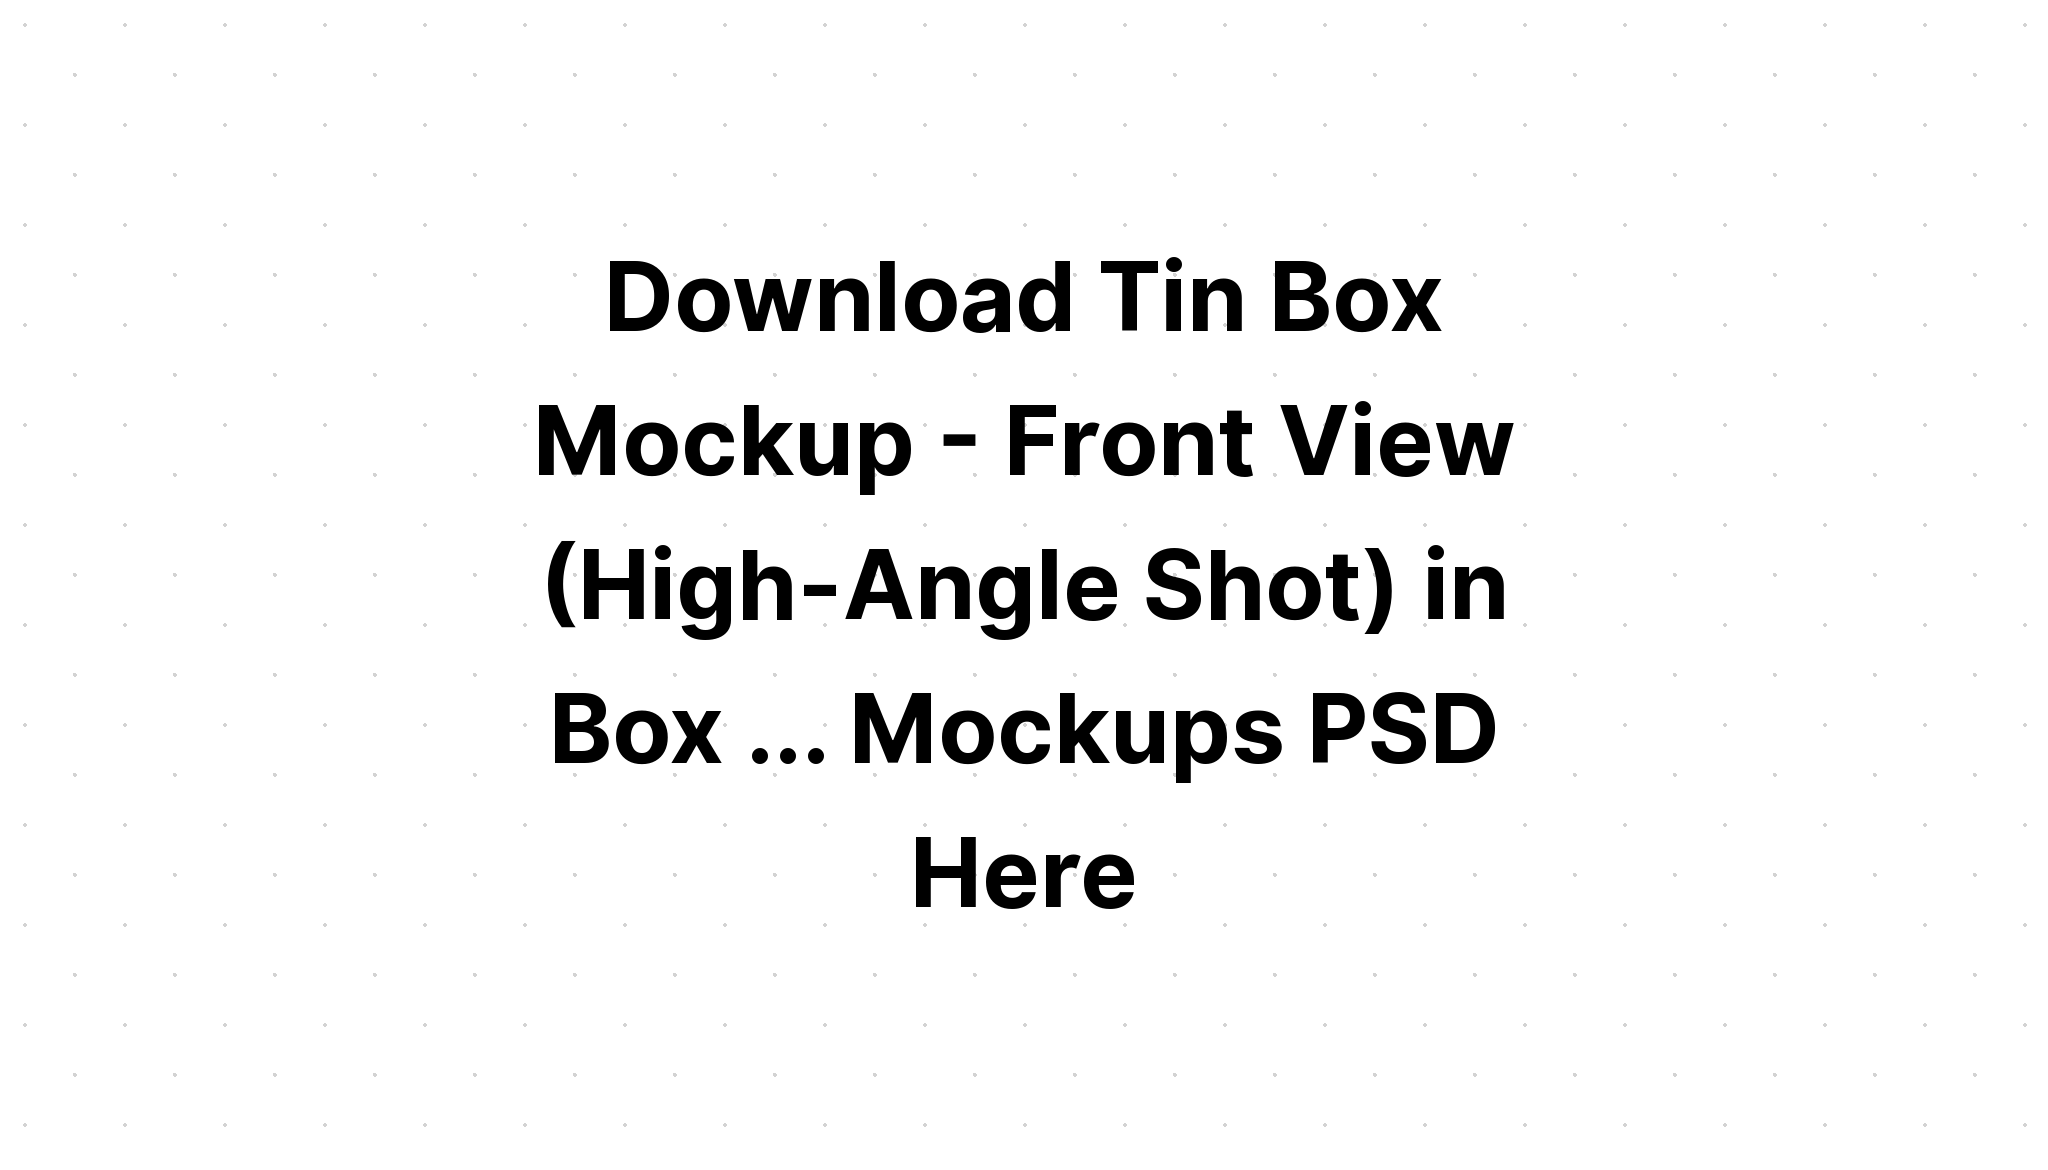 Download Milk Box Mockup - Front View (High Angle) - Freebify Mockups